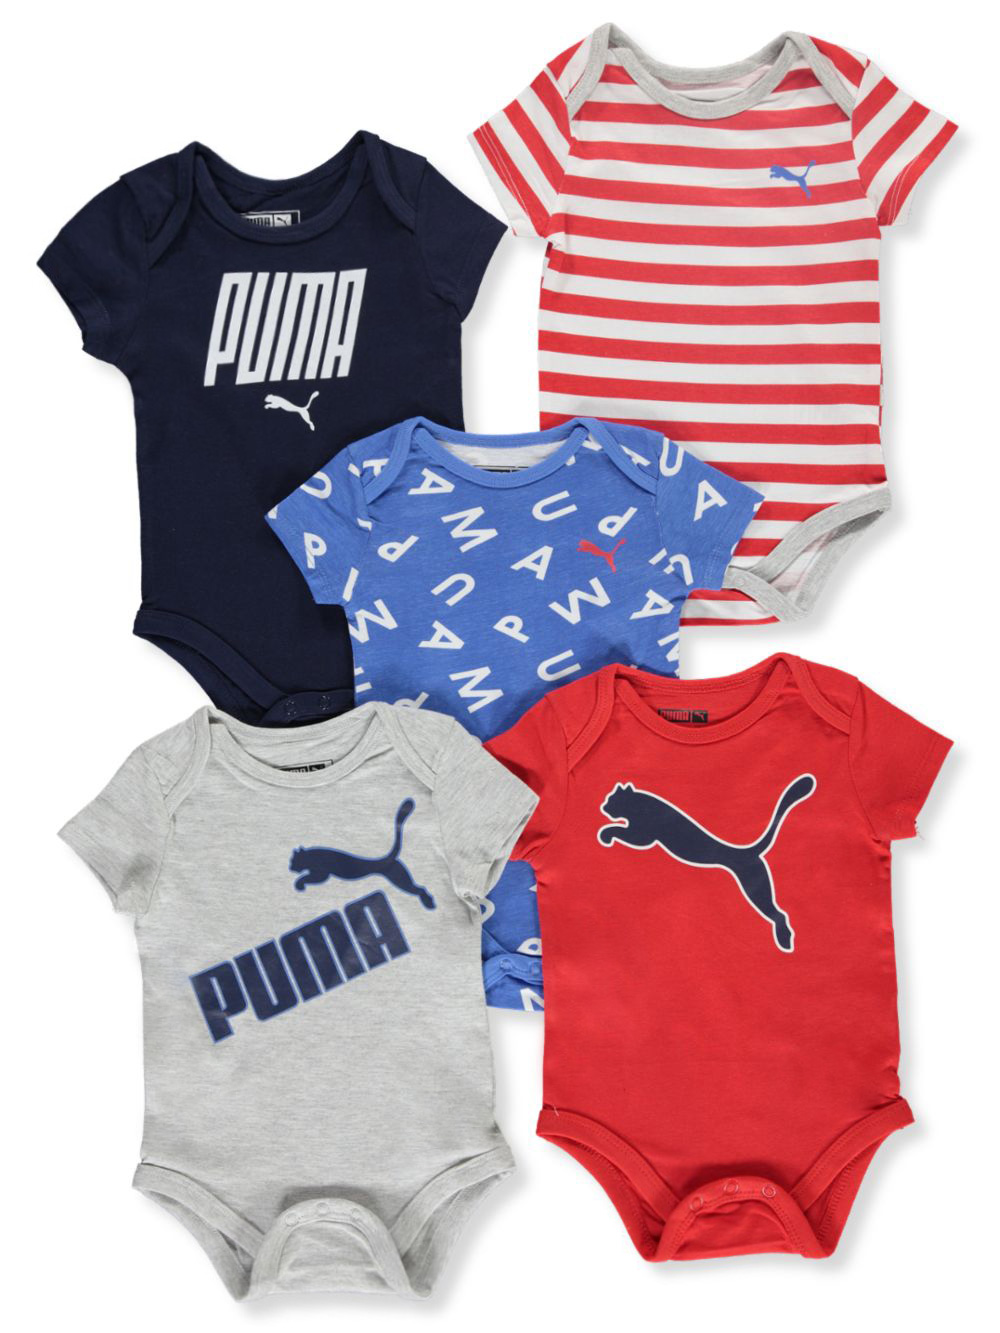 Boys' 5-Pack Bodysuits